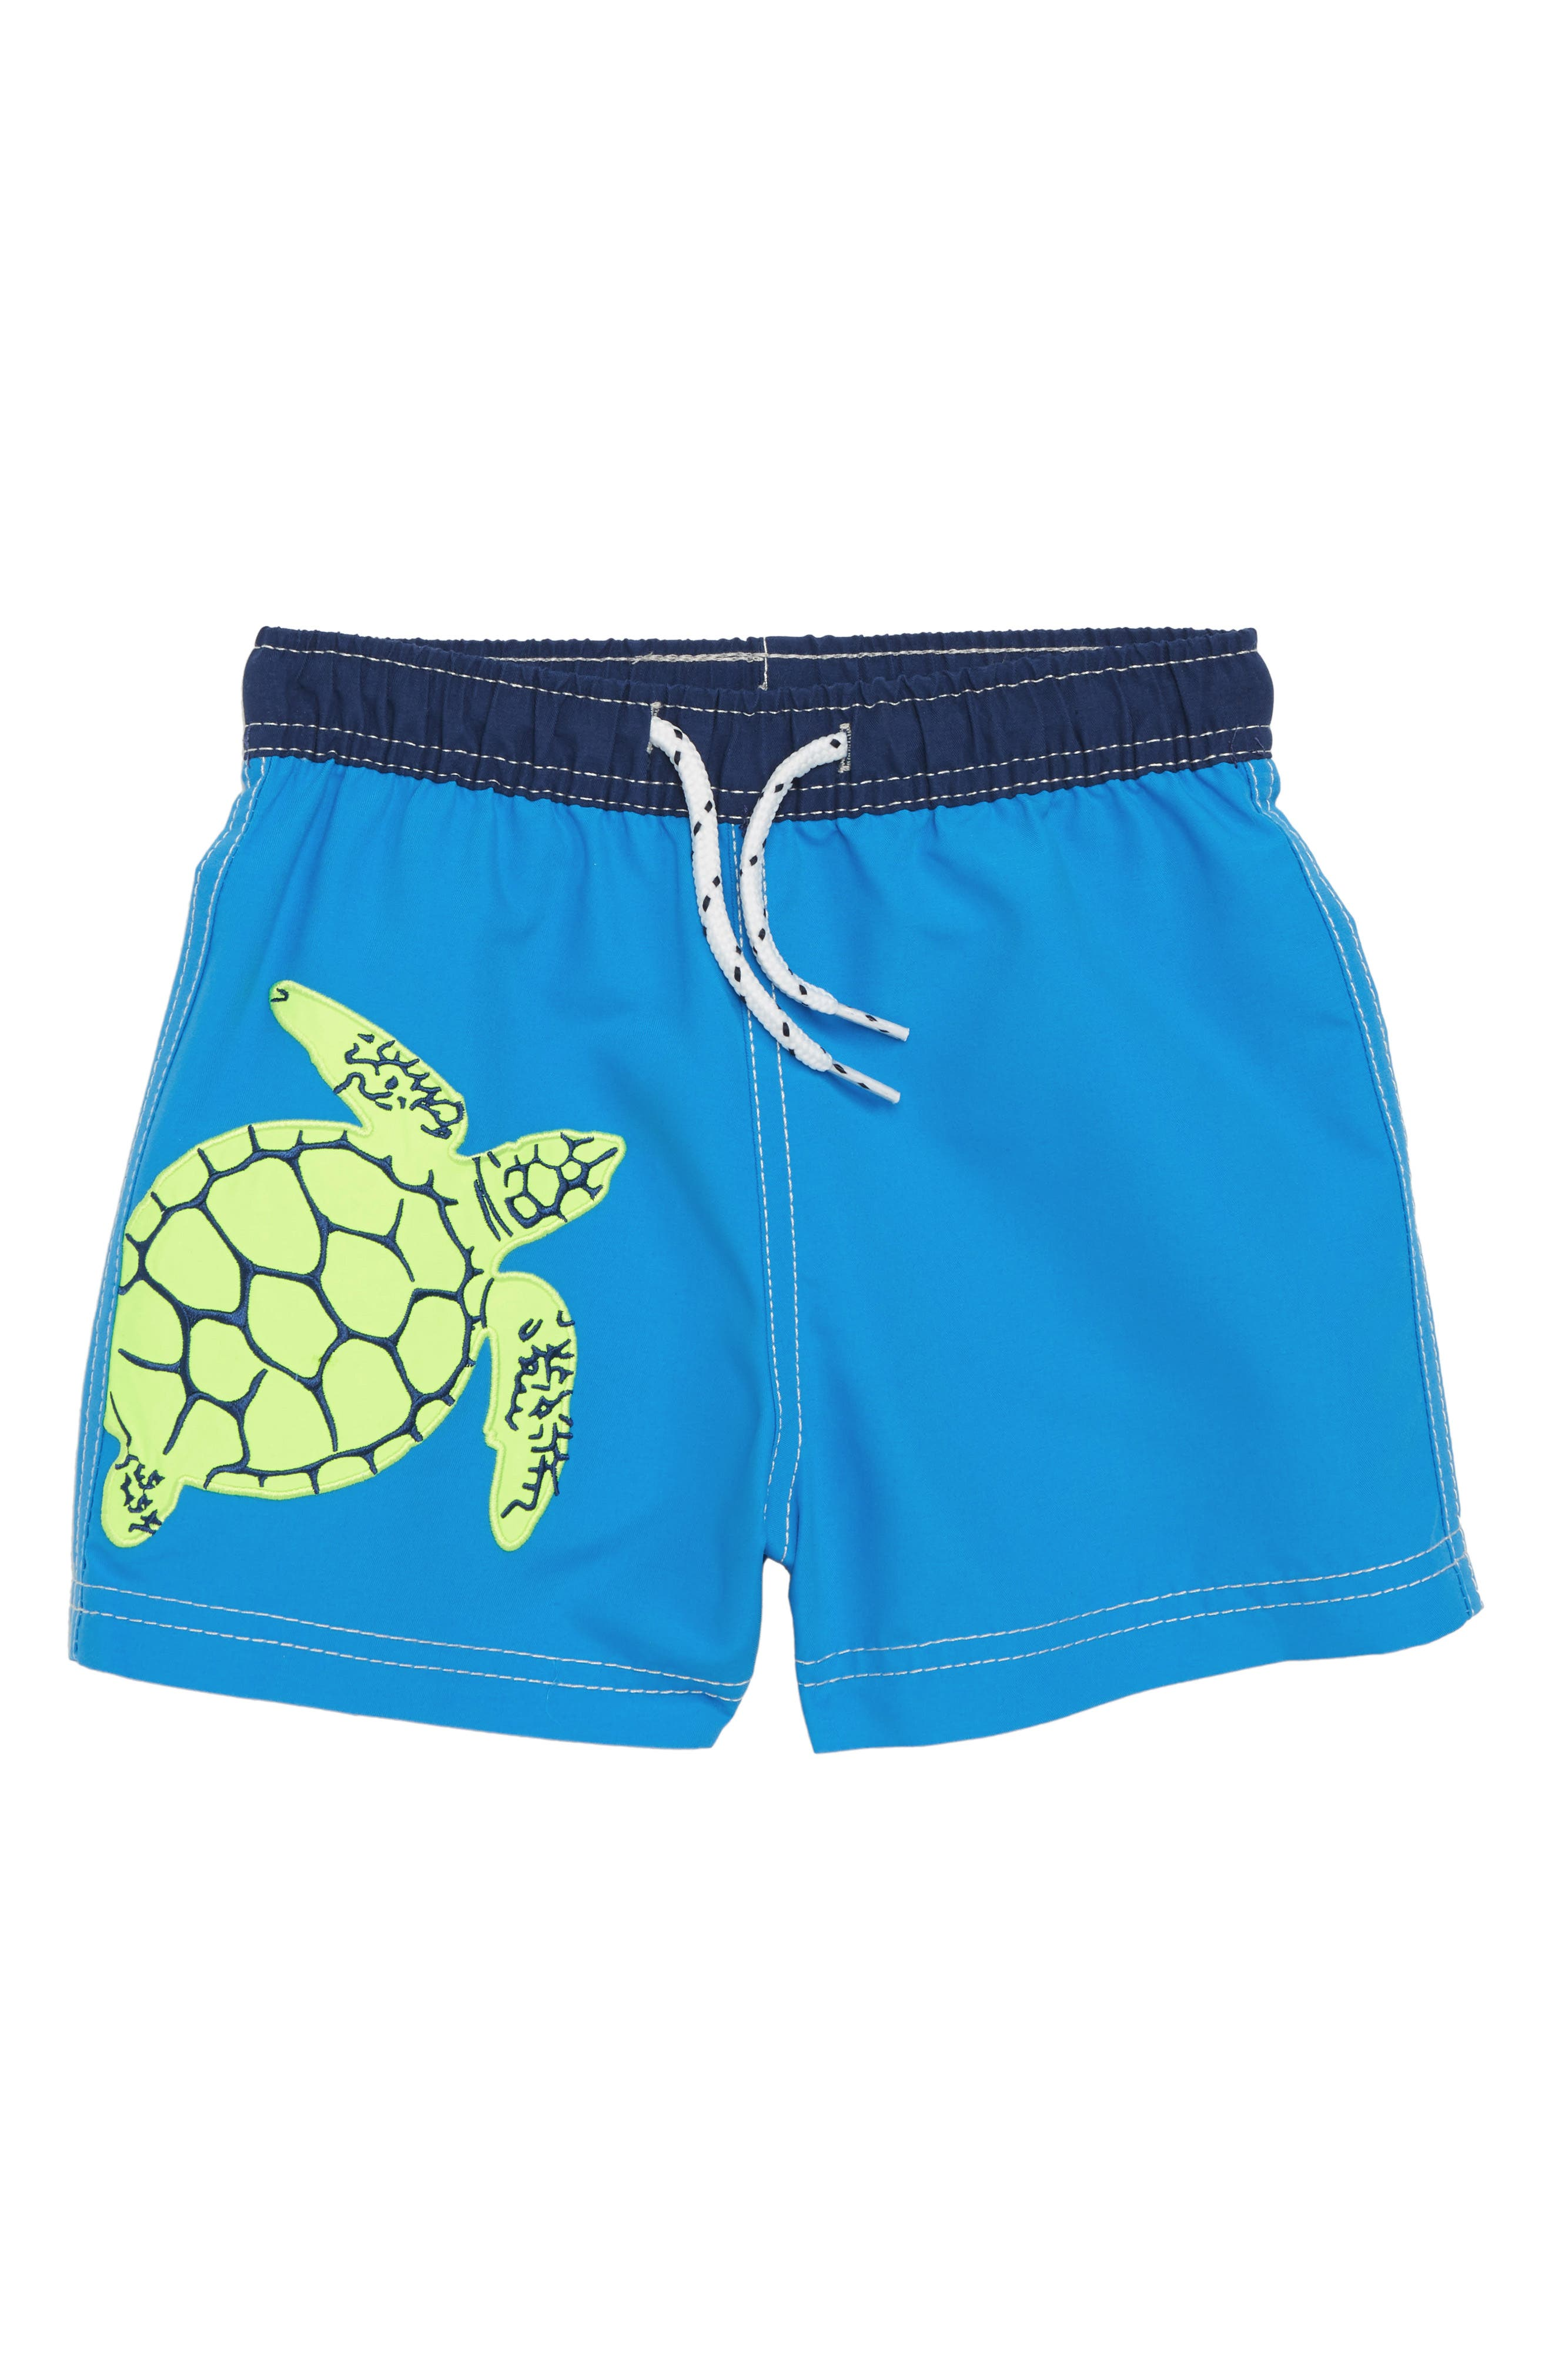 Embroidered Turtle Swim Trunks,                         Main,                         color, 400